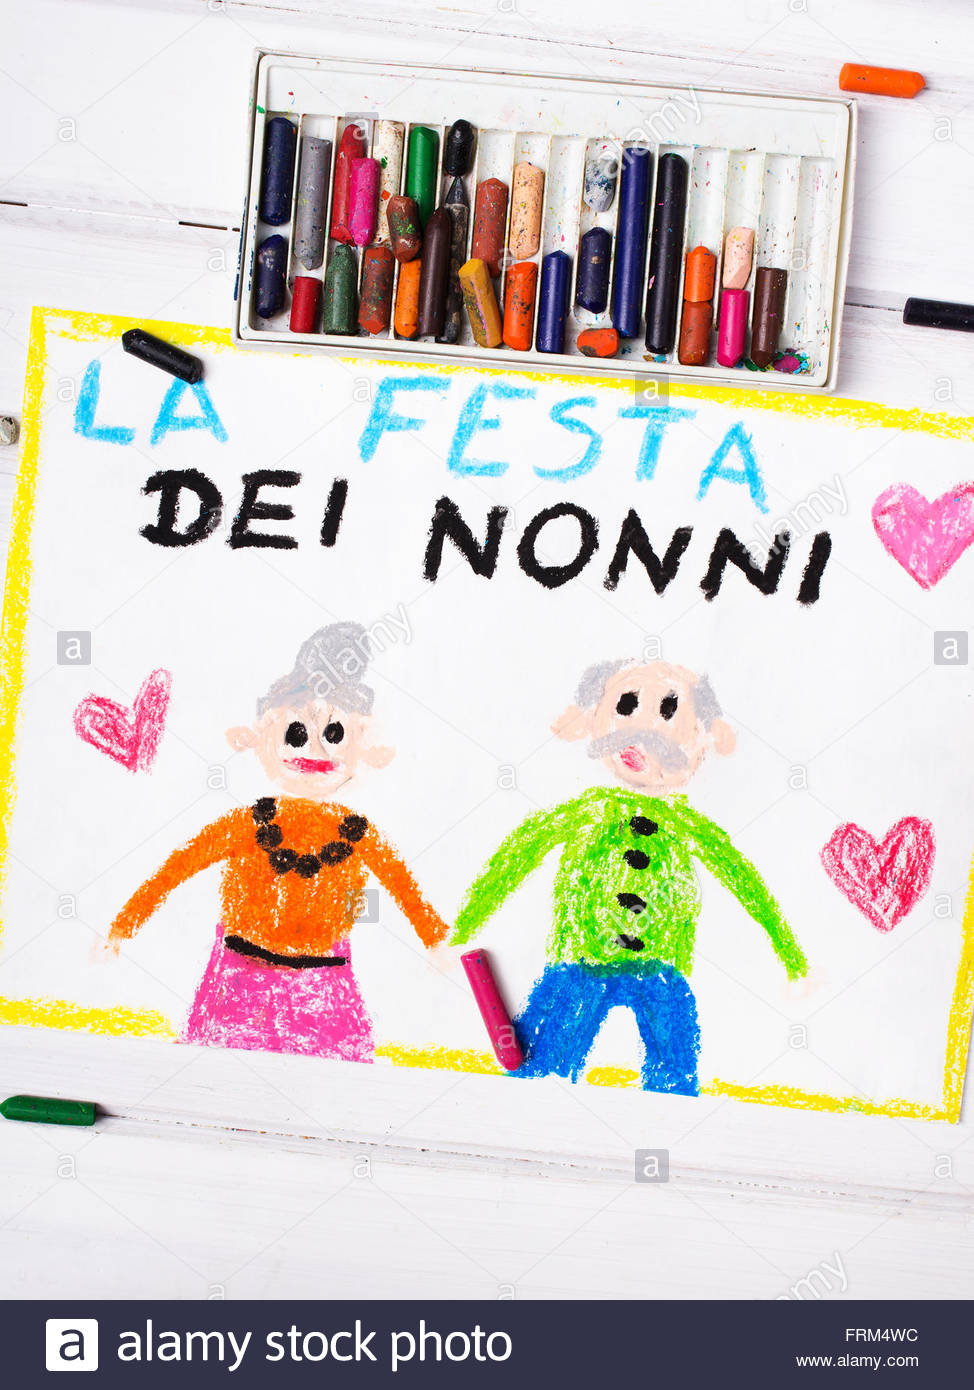 974x1390 Colorful Drawing Italian Grandparents Day Card Stock Photo